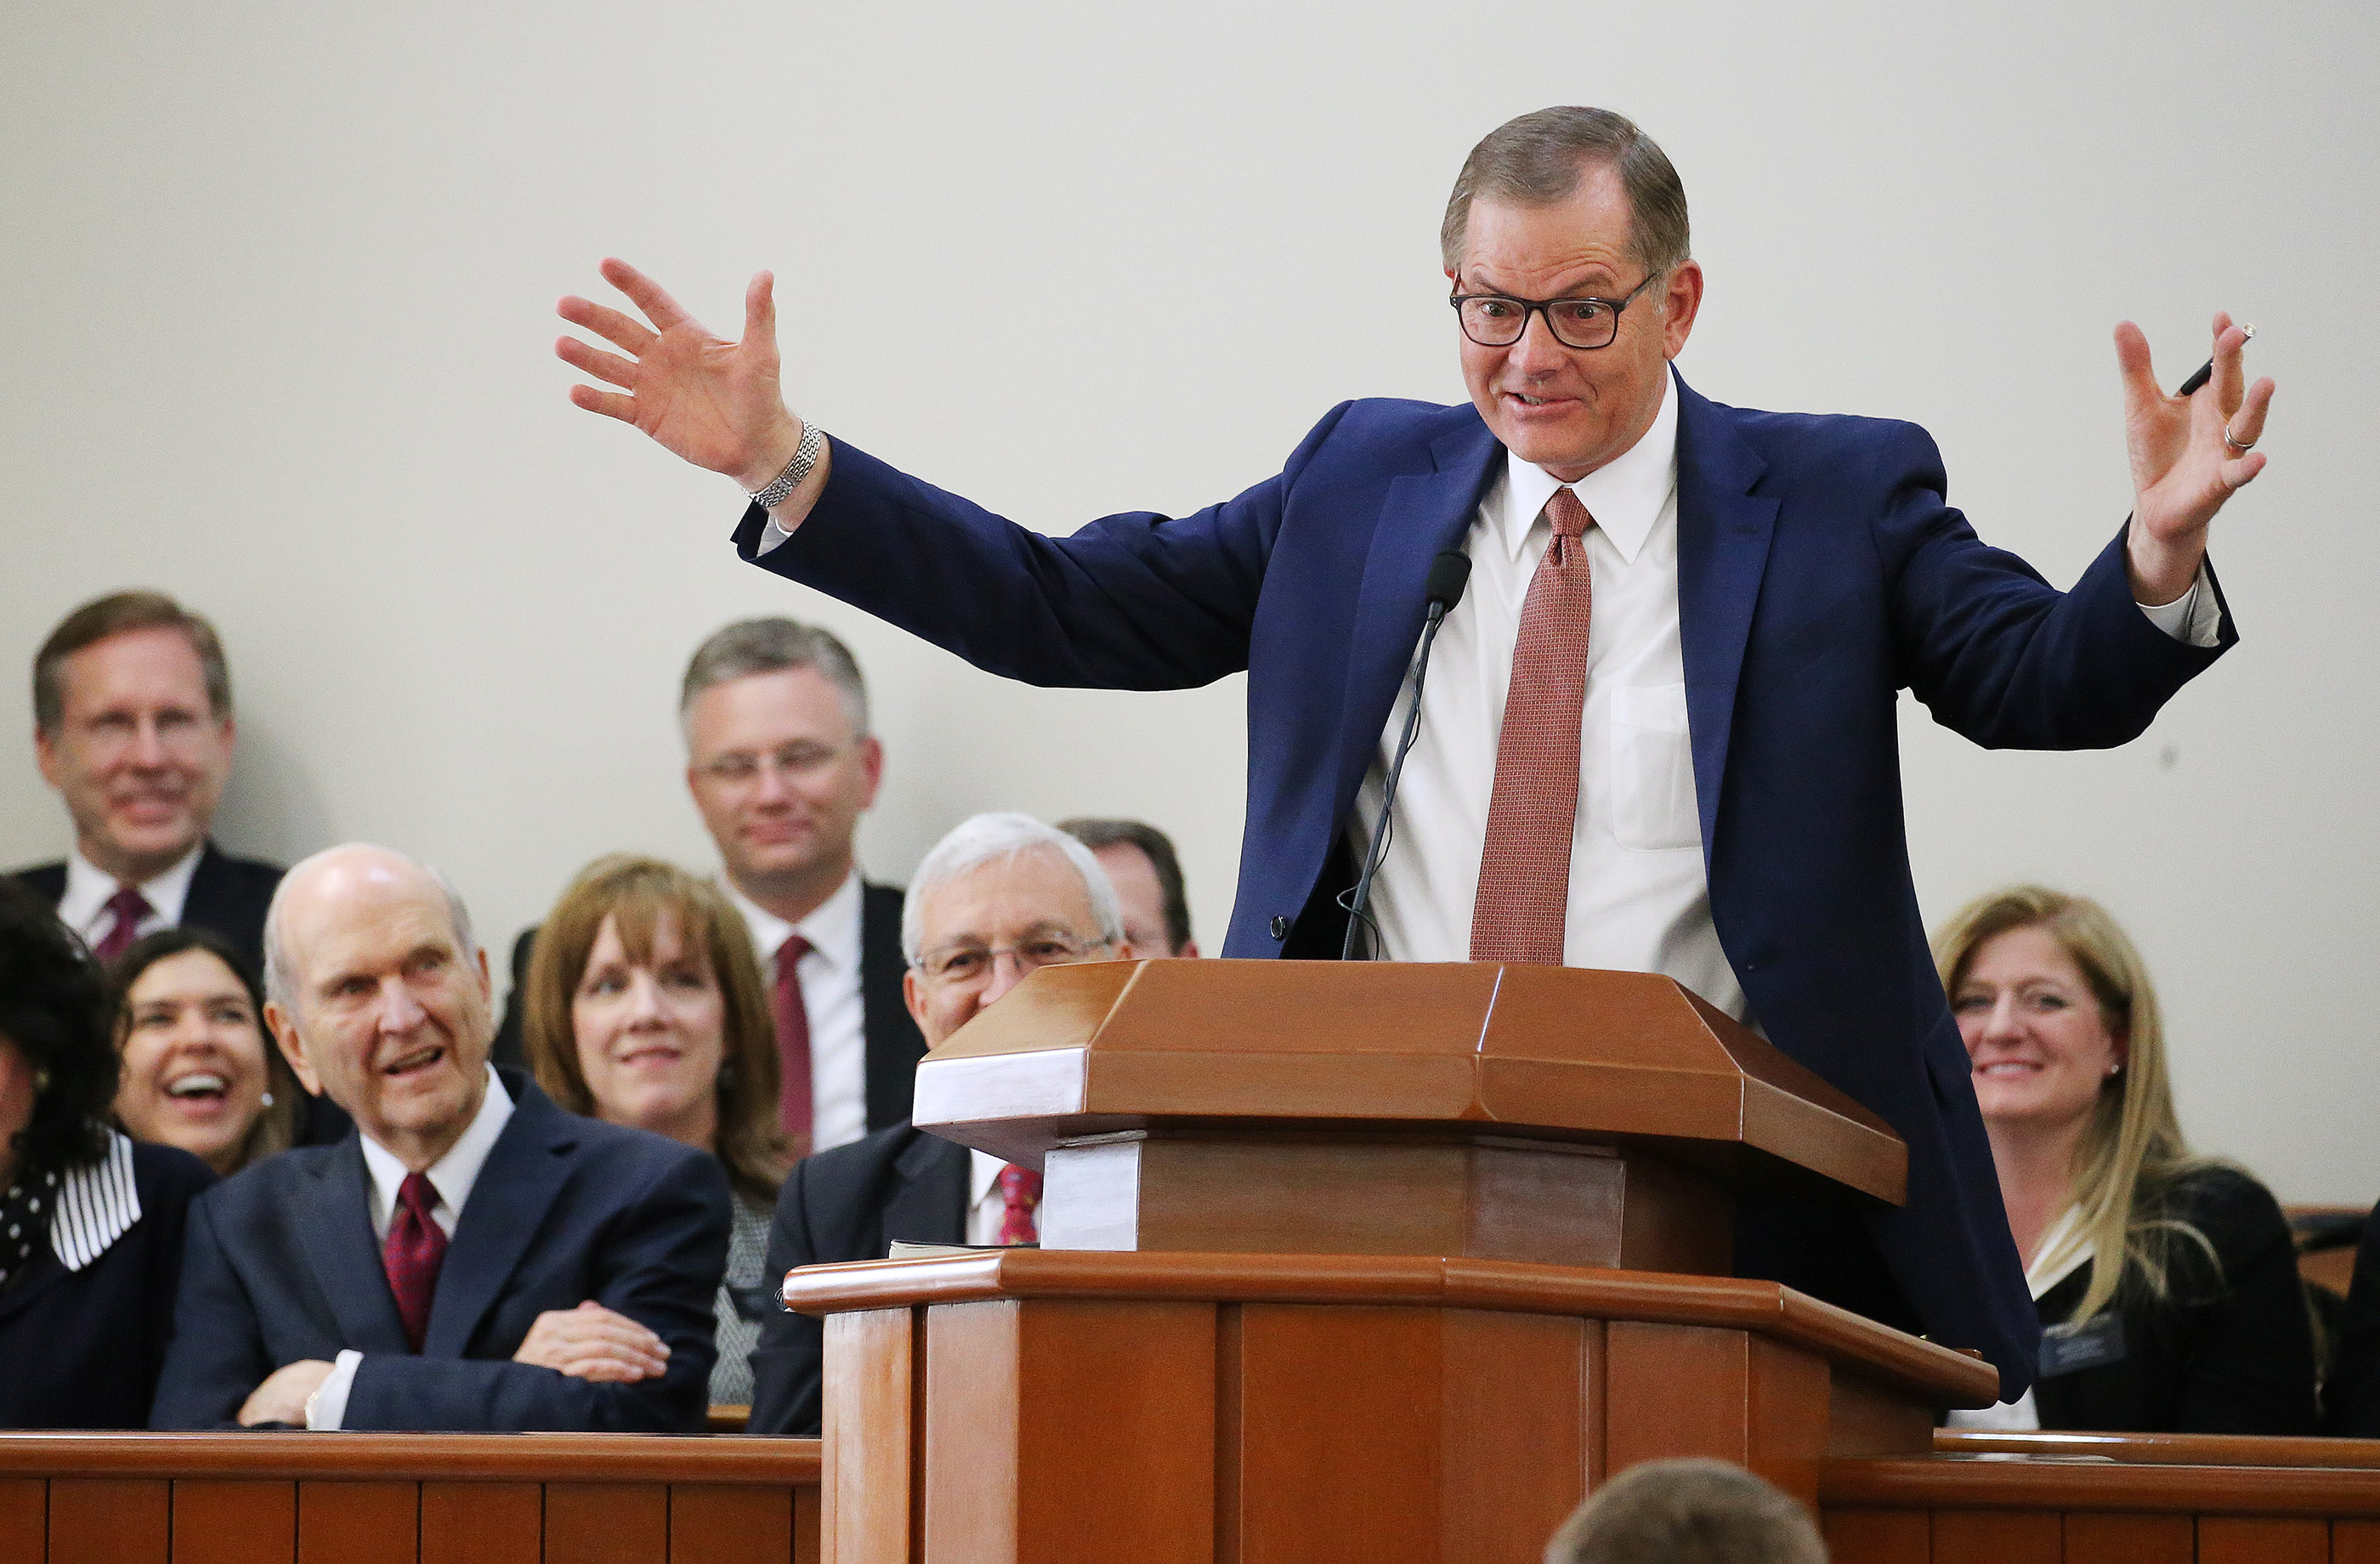 Elder Gary E. Stevenson of the Quorum of the Twelve Apostles of The Church of Jesus Christ of Latter-day Saints speaks during a missionary meeting in Lima, Peru, on Oct. 20, 2018.